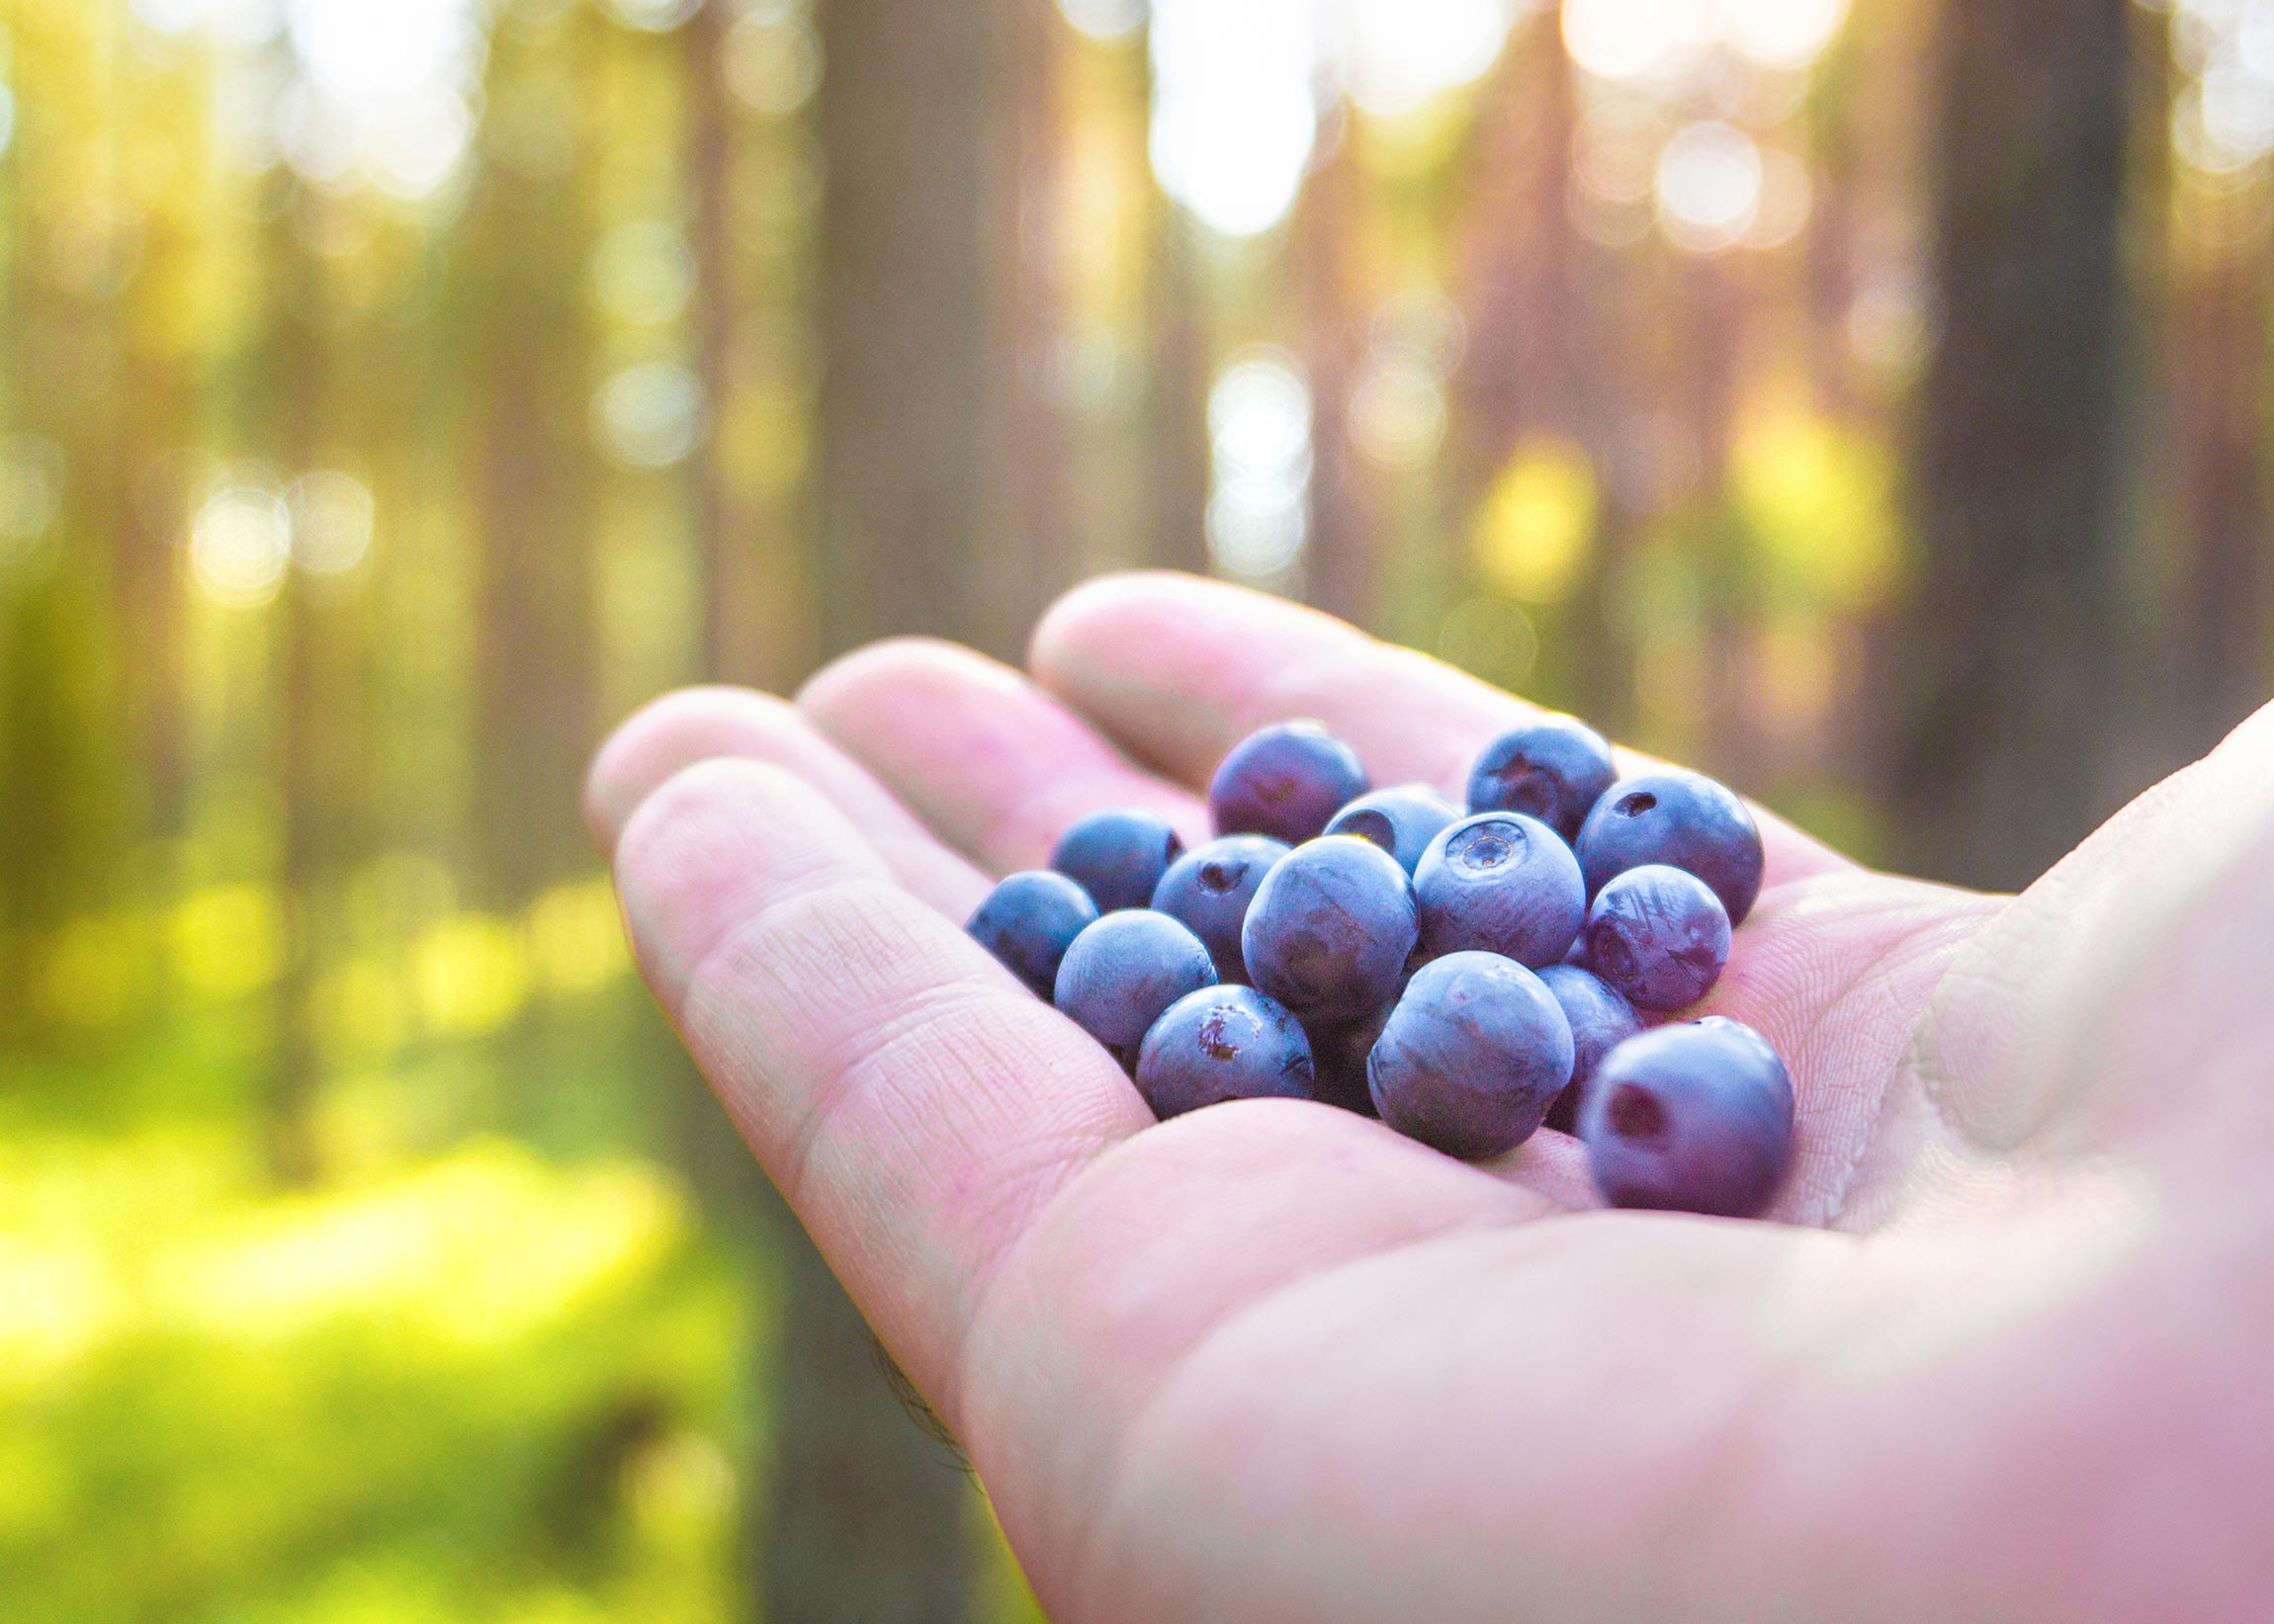 hand holding blueberries